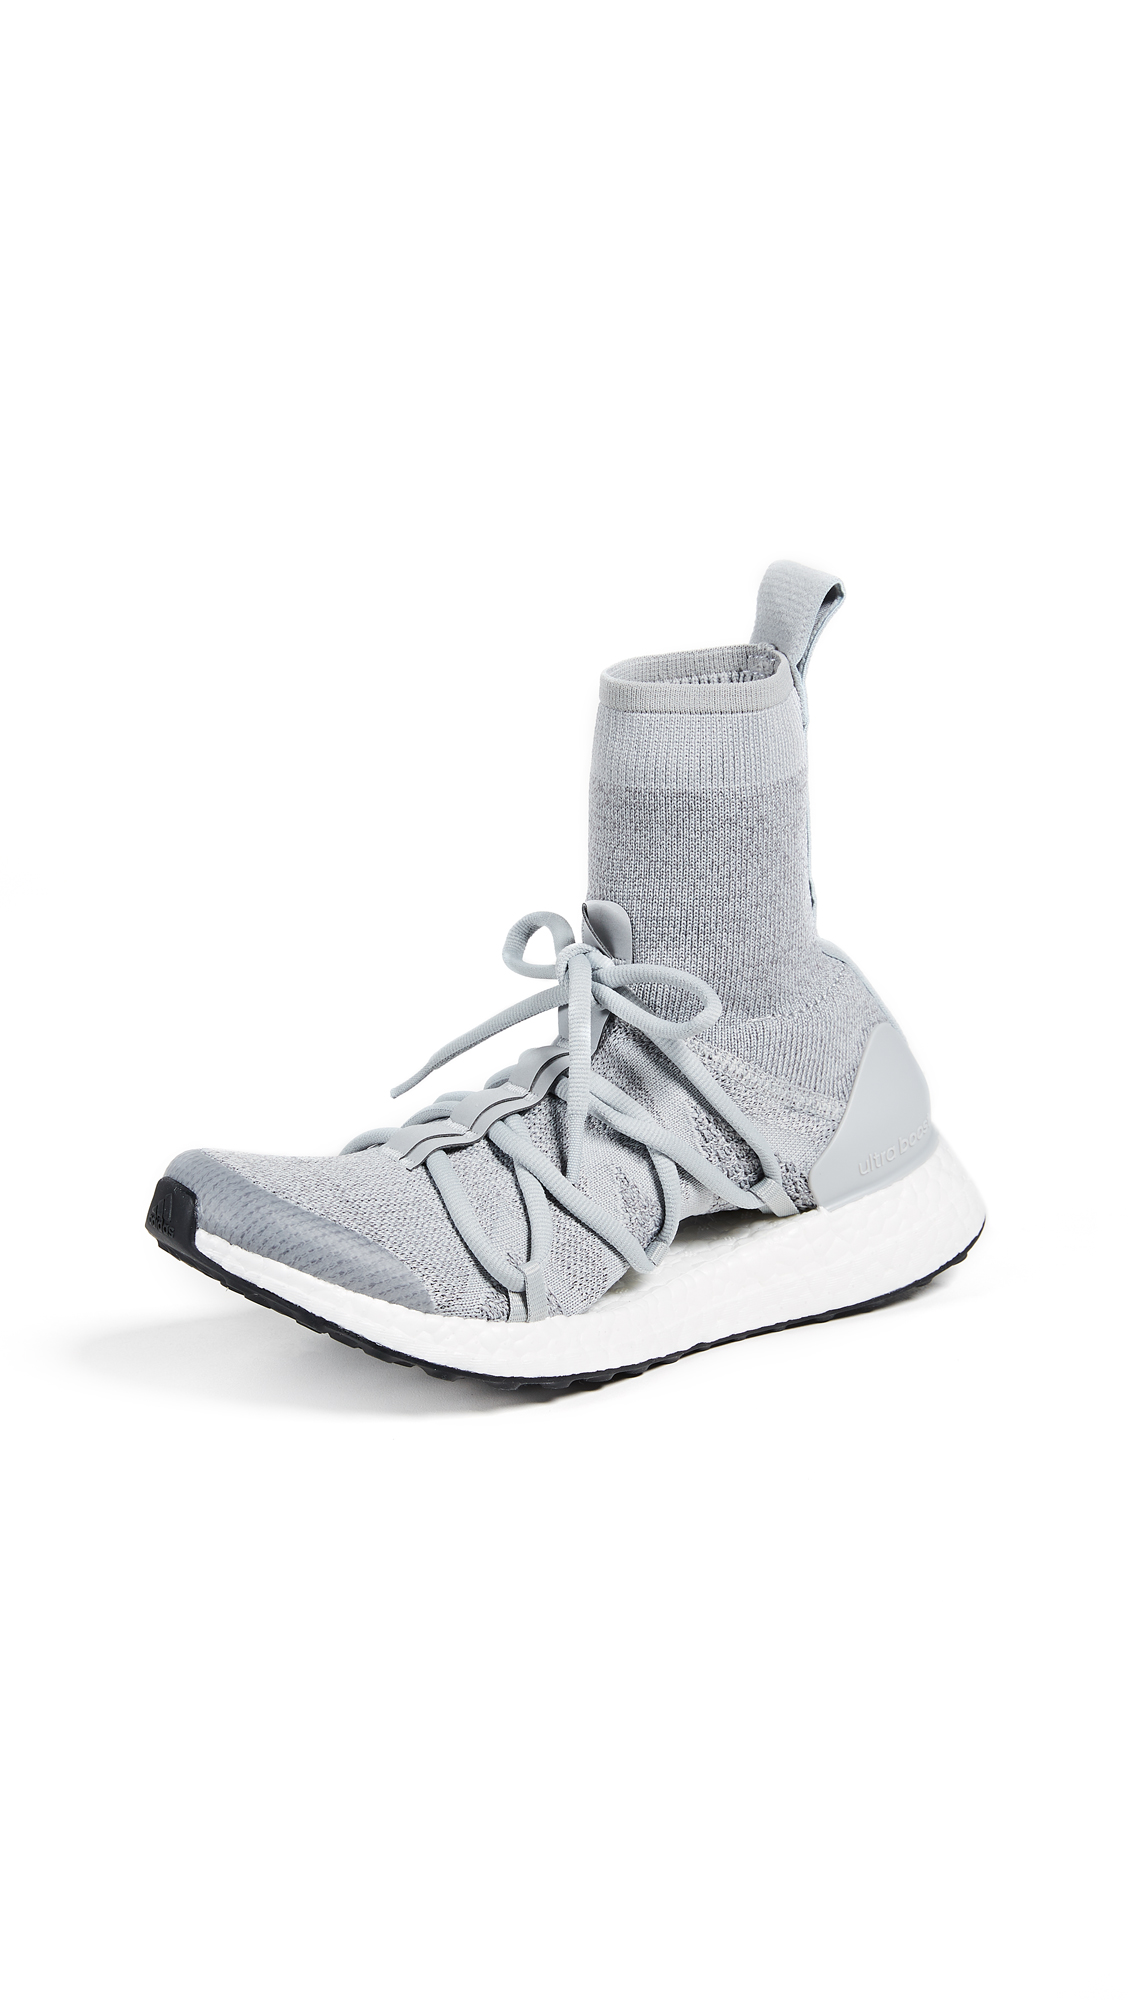 adidas by Stella McCartney UltraBOOST X Mid Sneakers - Stone/Core White/Eggshell Grey